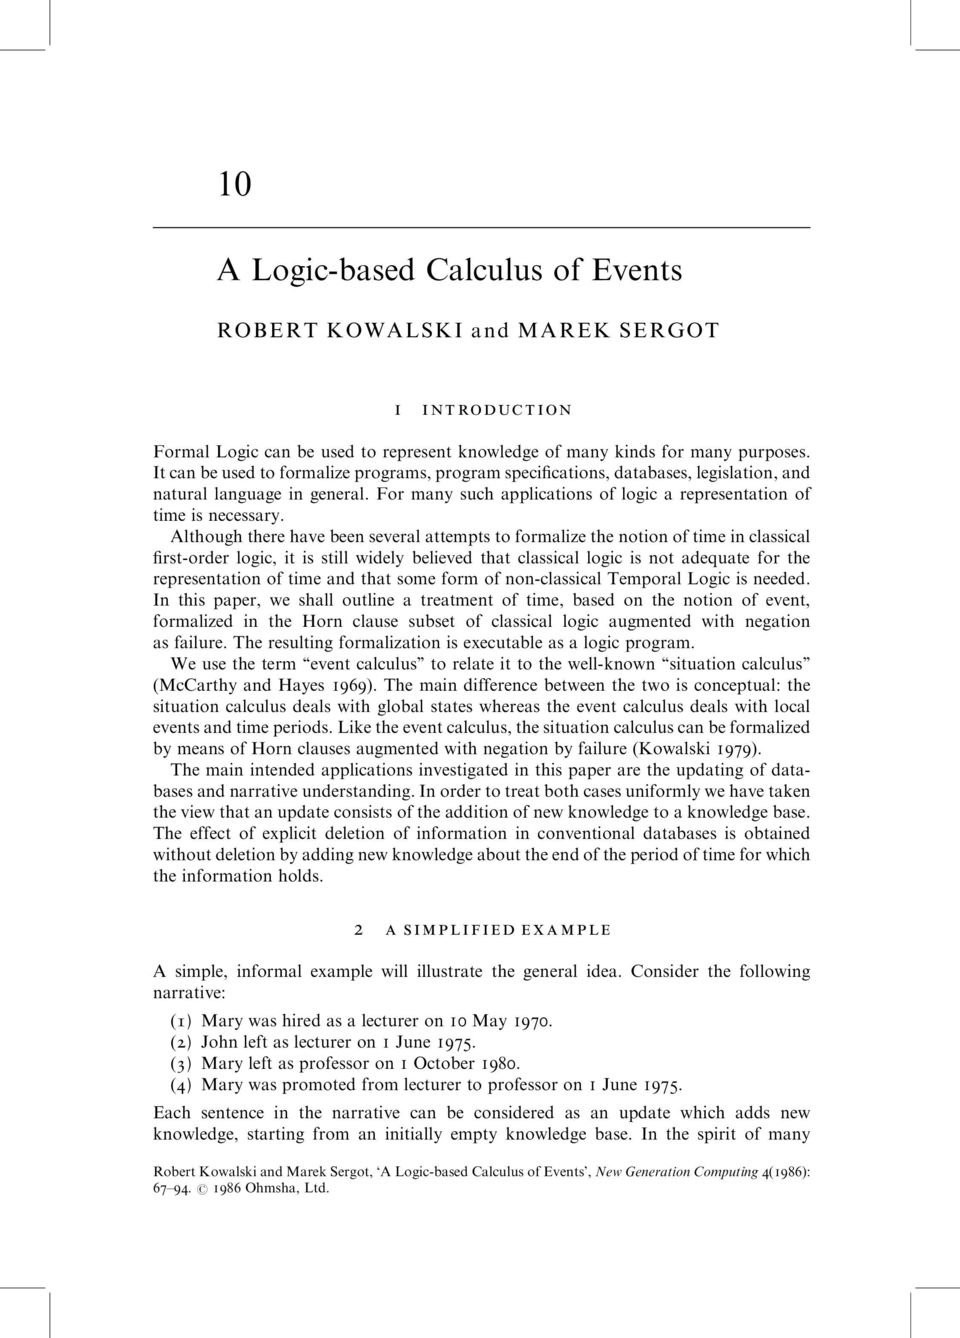 Although there have been several attempts to formalize the notion of time in classical first-order logic, it is still widely believed that classical logic is not adequate for the representation of